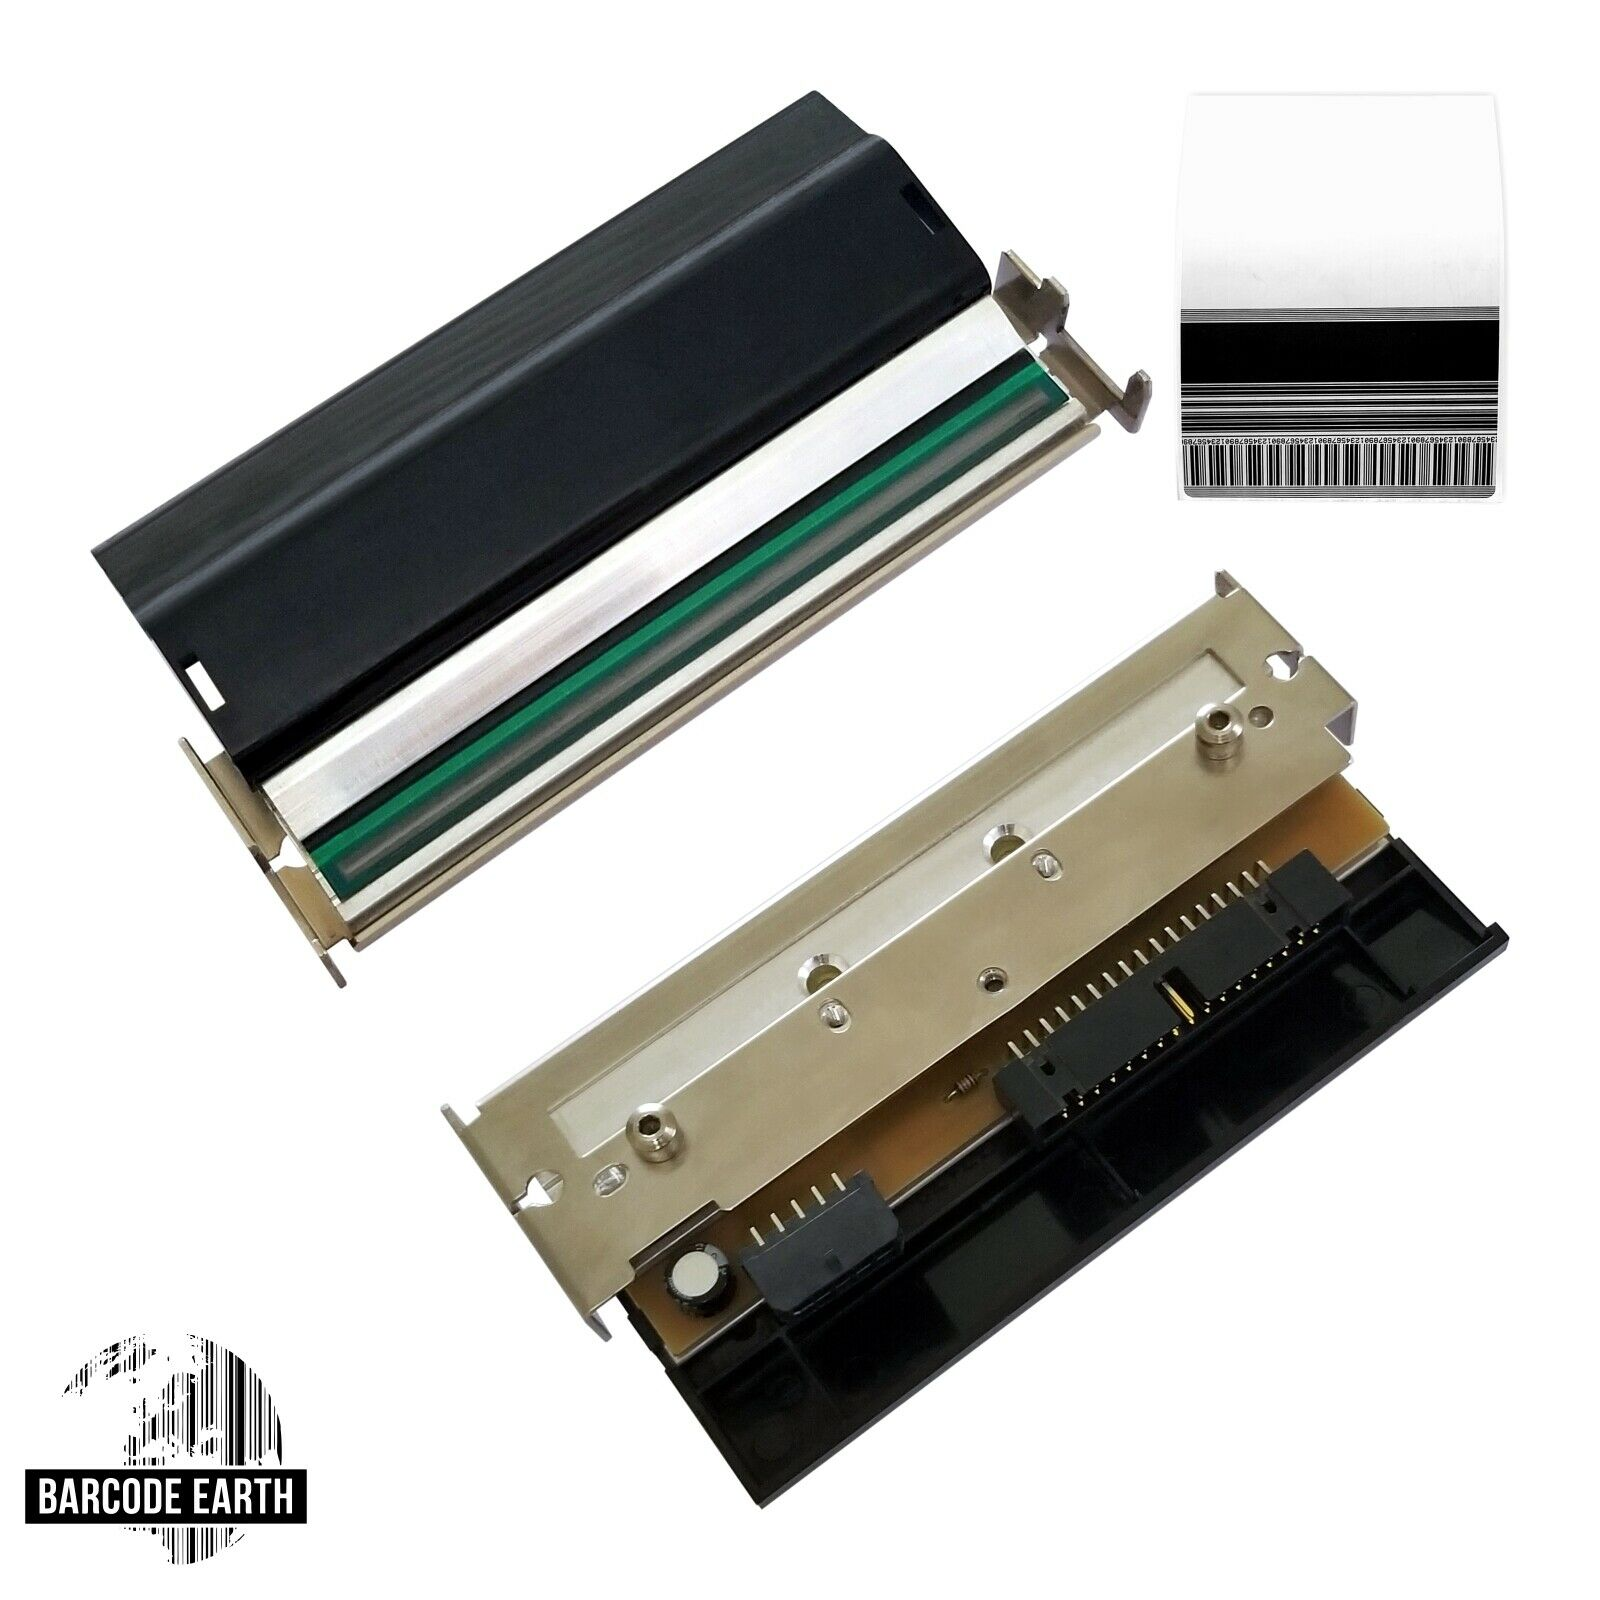 Electronics ZM400 Printhead for Zebra ZM400 Barcode Printer